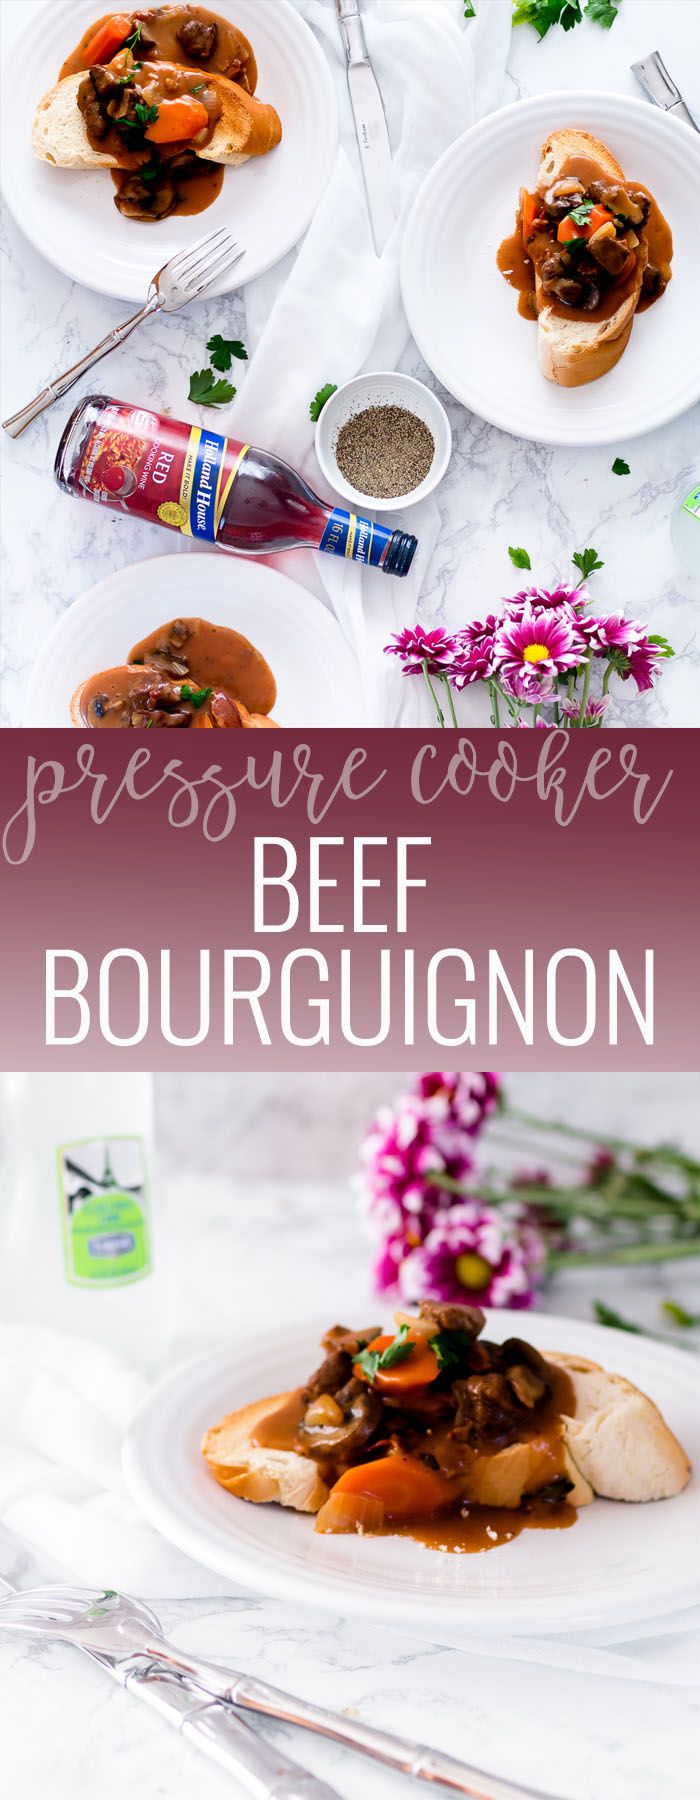 Pressure Cooker Beef Bourguignon using Holland House Red Cooking Wine #ad | homemade beef bourguignon | how to make beef bourguignon | easy beef bourguignon | homemade beed recipes | easy dinner recipes | slow cooker dinner recipes || Oh So Delicioso #beefbourguignon #pressurecooker #instantpotrecipe